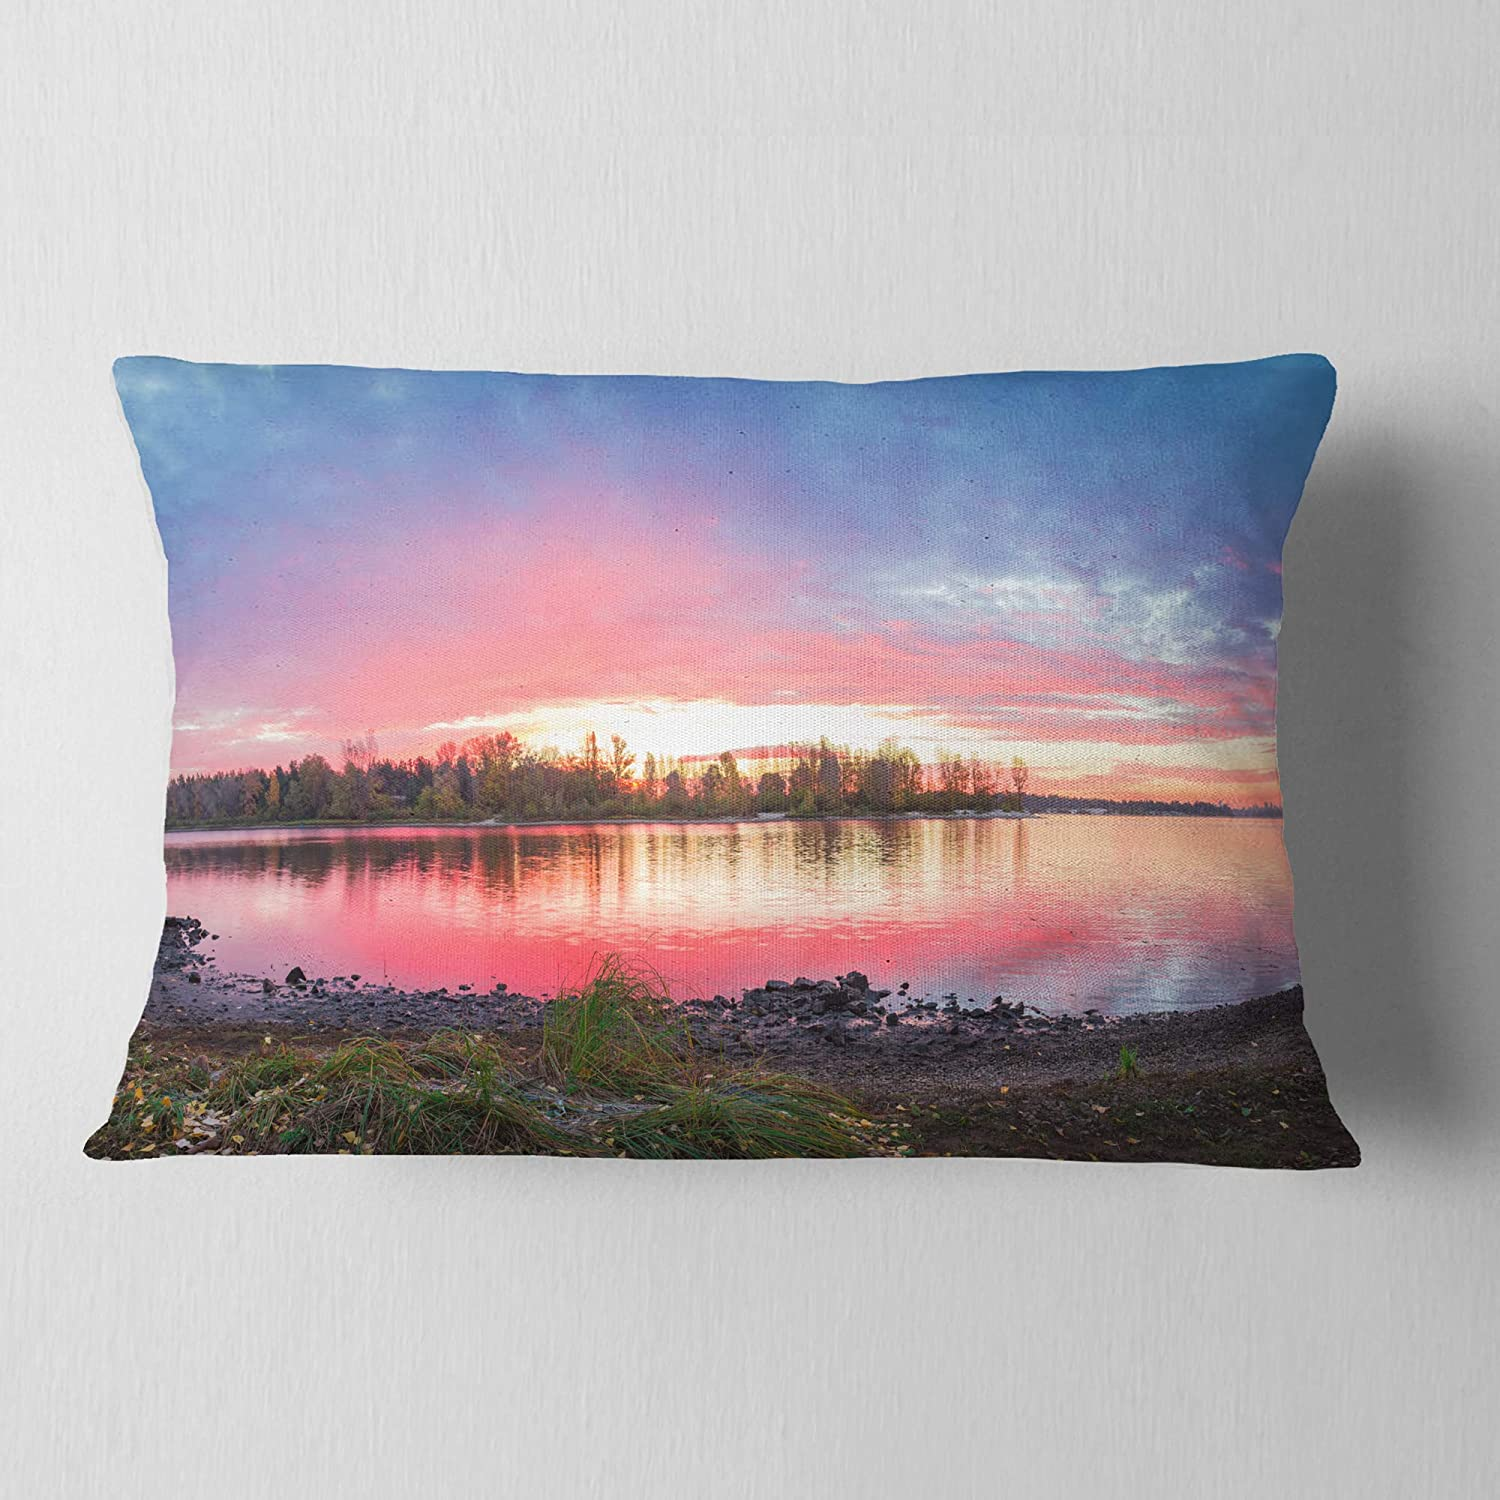 x 20 in in Designart CU10974-12-20 Beautiful Fall Sunrise Over River Landscape Printed Lumbar Cushion Cover for Living Room Insert Side Sofa Throw Pillow 12 in